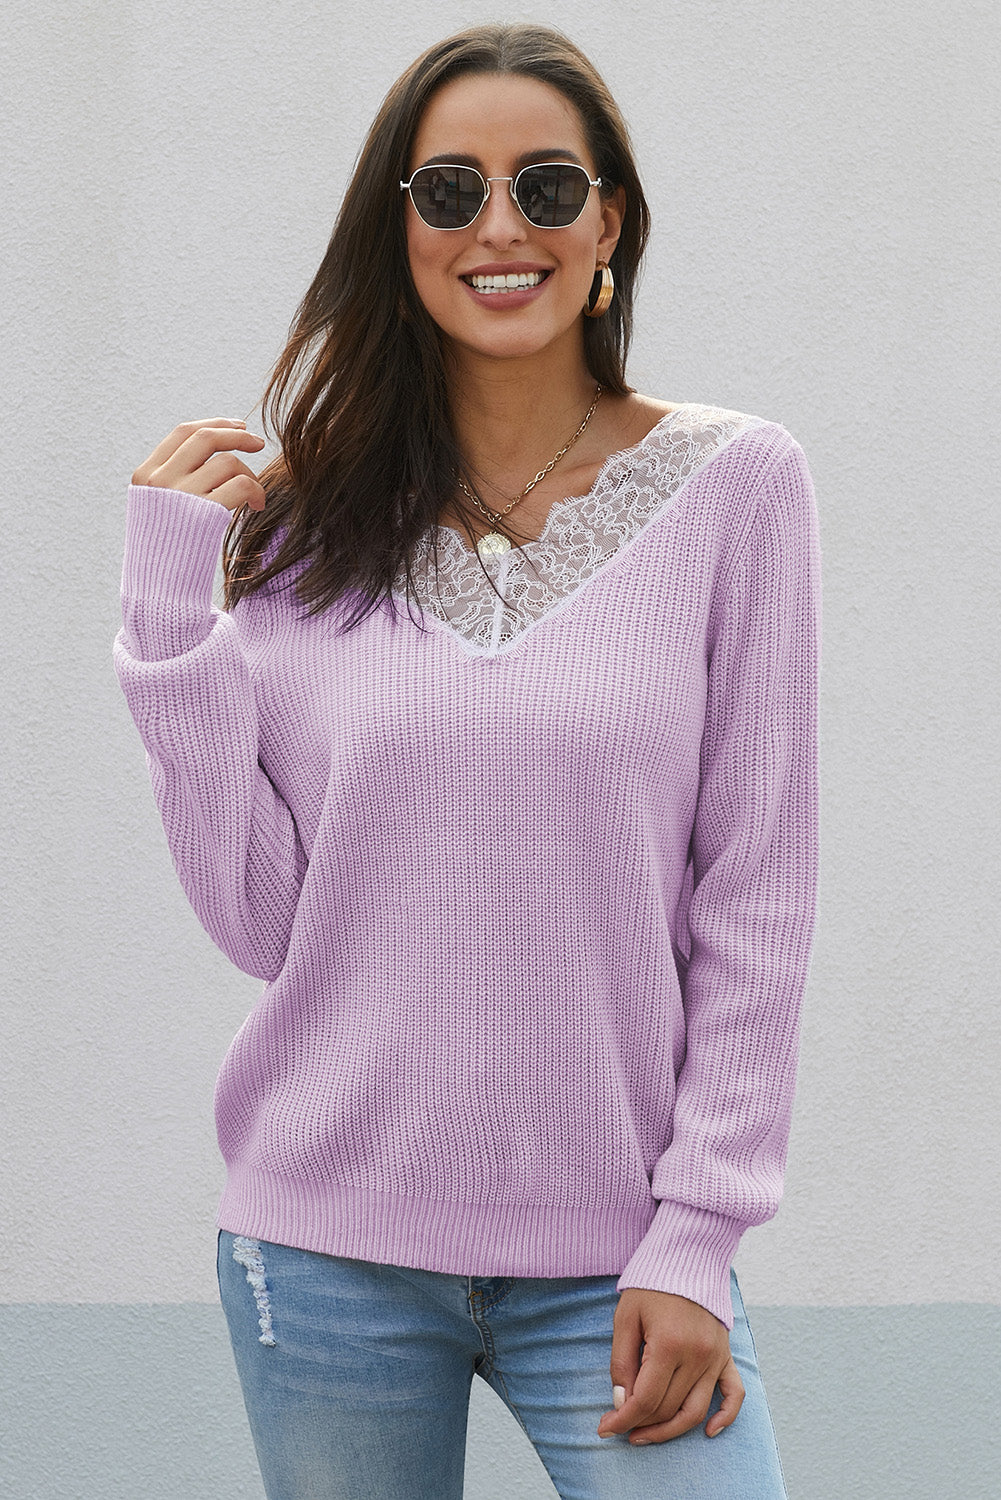 Purple Lace Collar V Neck Ribbed Sweater Sweaters & Cardigans Discount Designer Fashion Clothes Shoes Bags Women Men Kids Children Black Owned Business